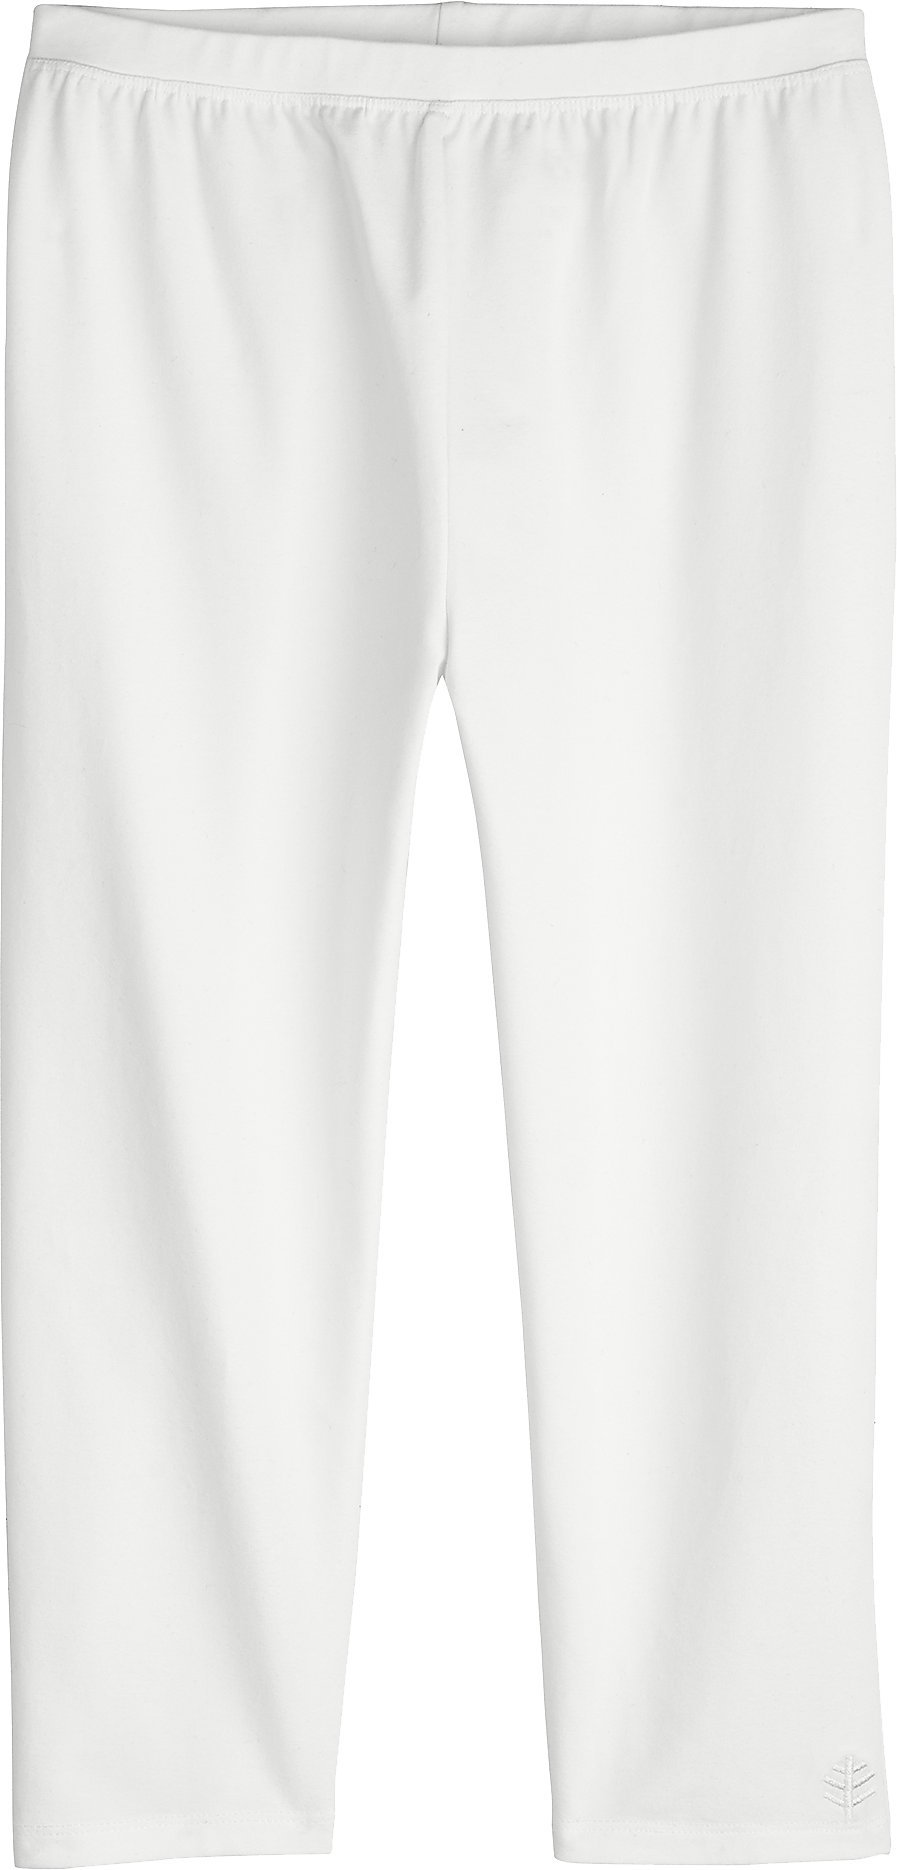 Coolibar UPF 50+ Girls' Summer Capris - Sun Protective (X-Large- White)